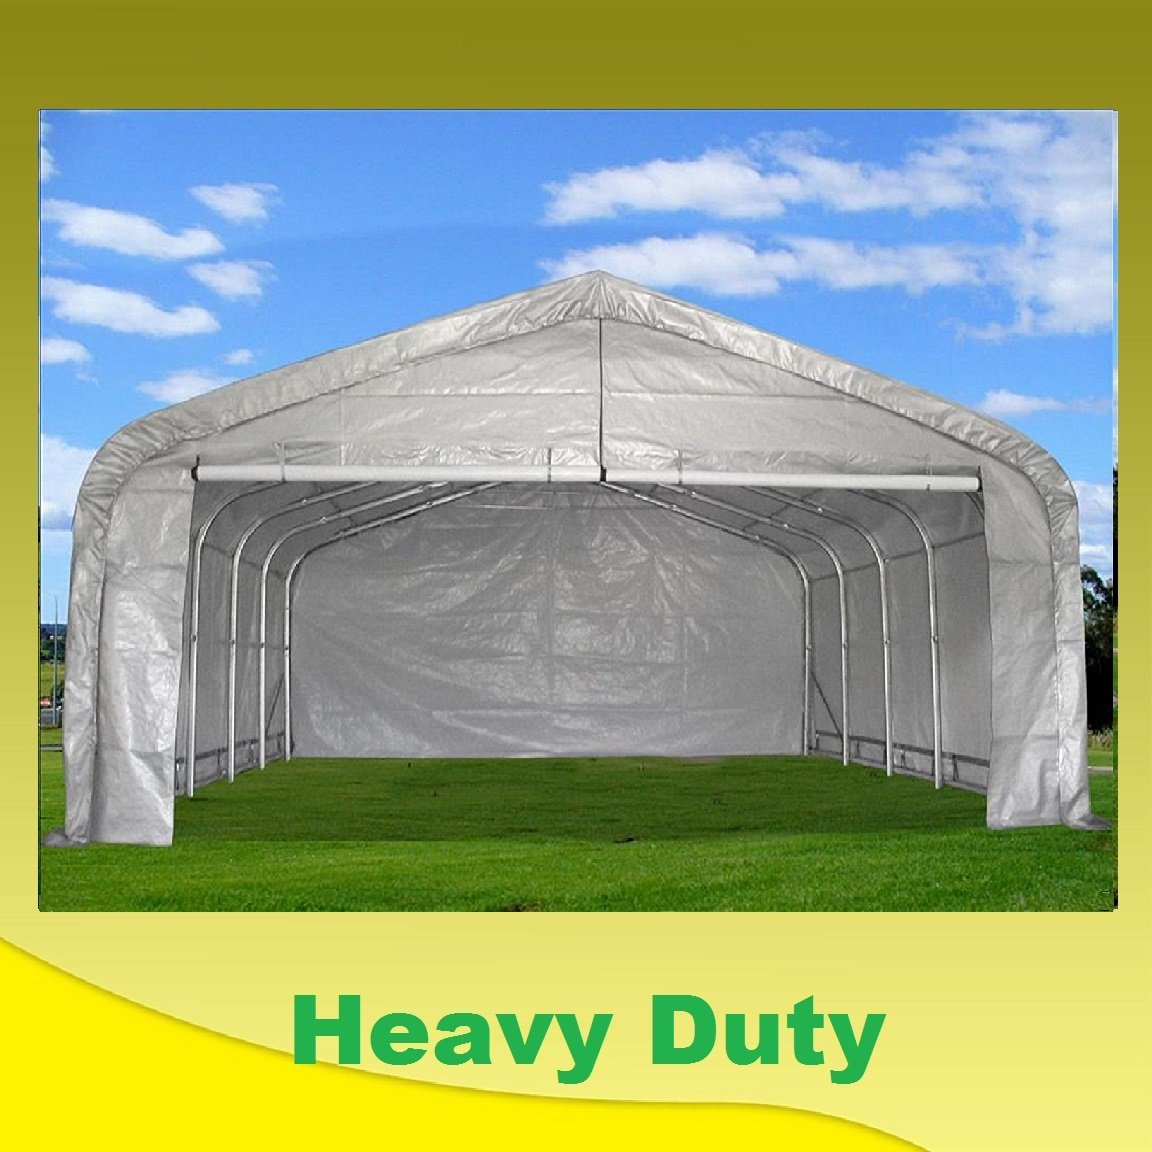 20'x22' Carport Grey/White - Waterproof Storage Canopy Shed Car Truck Boat Garage - By DELTA Canopies